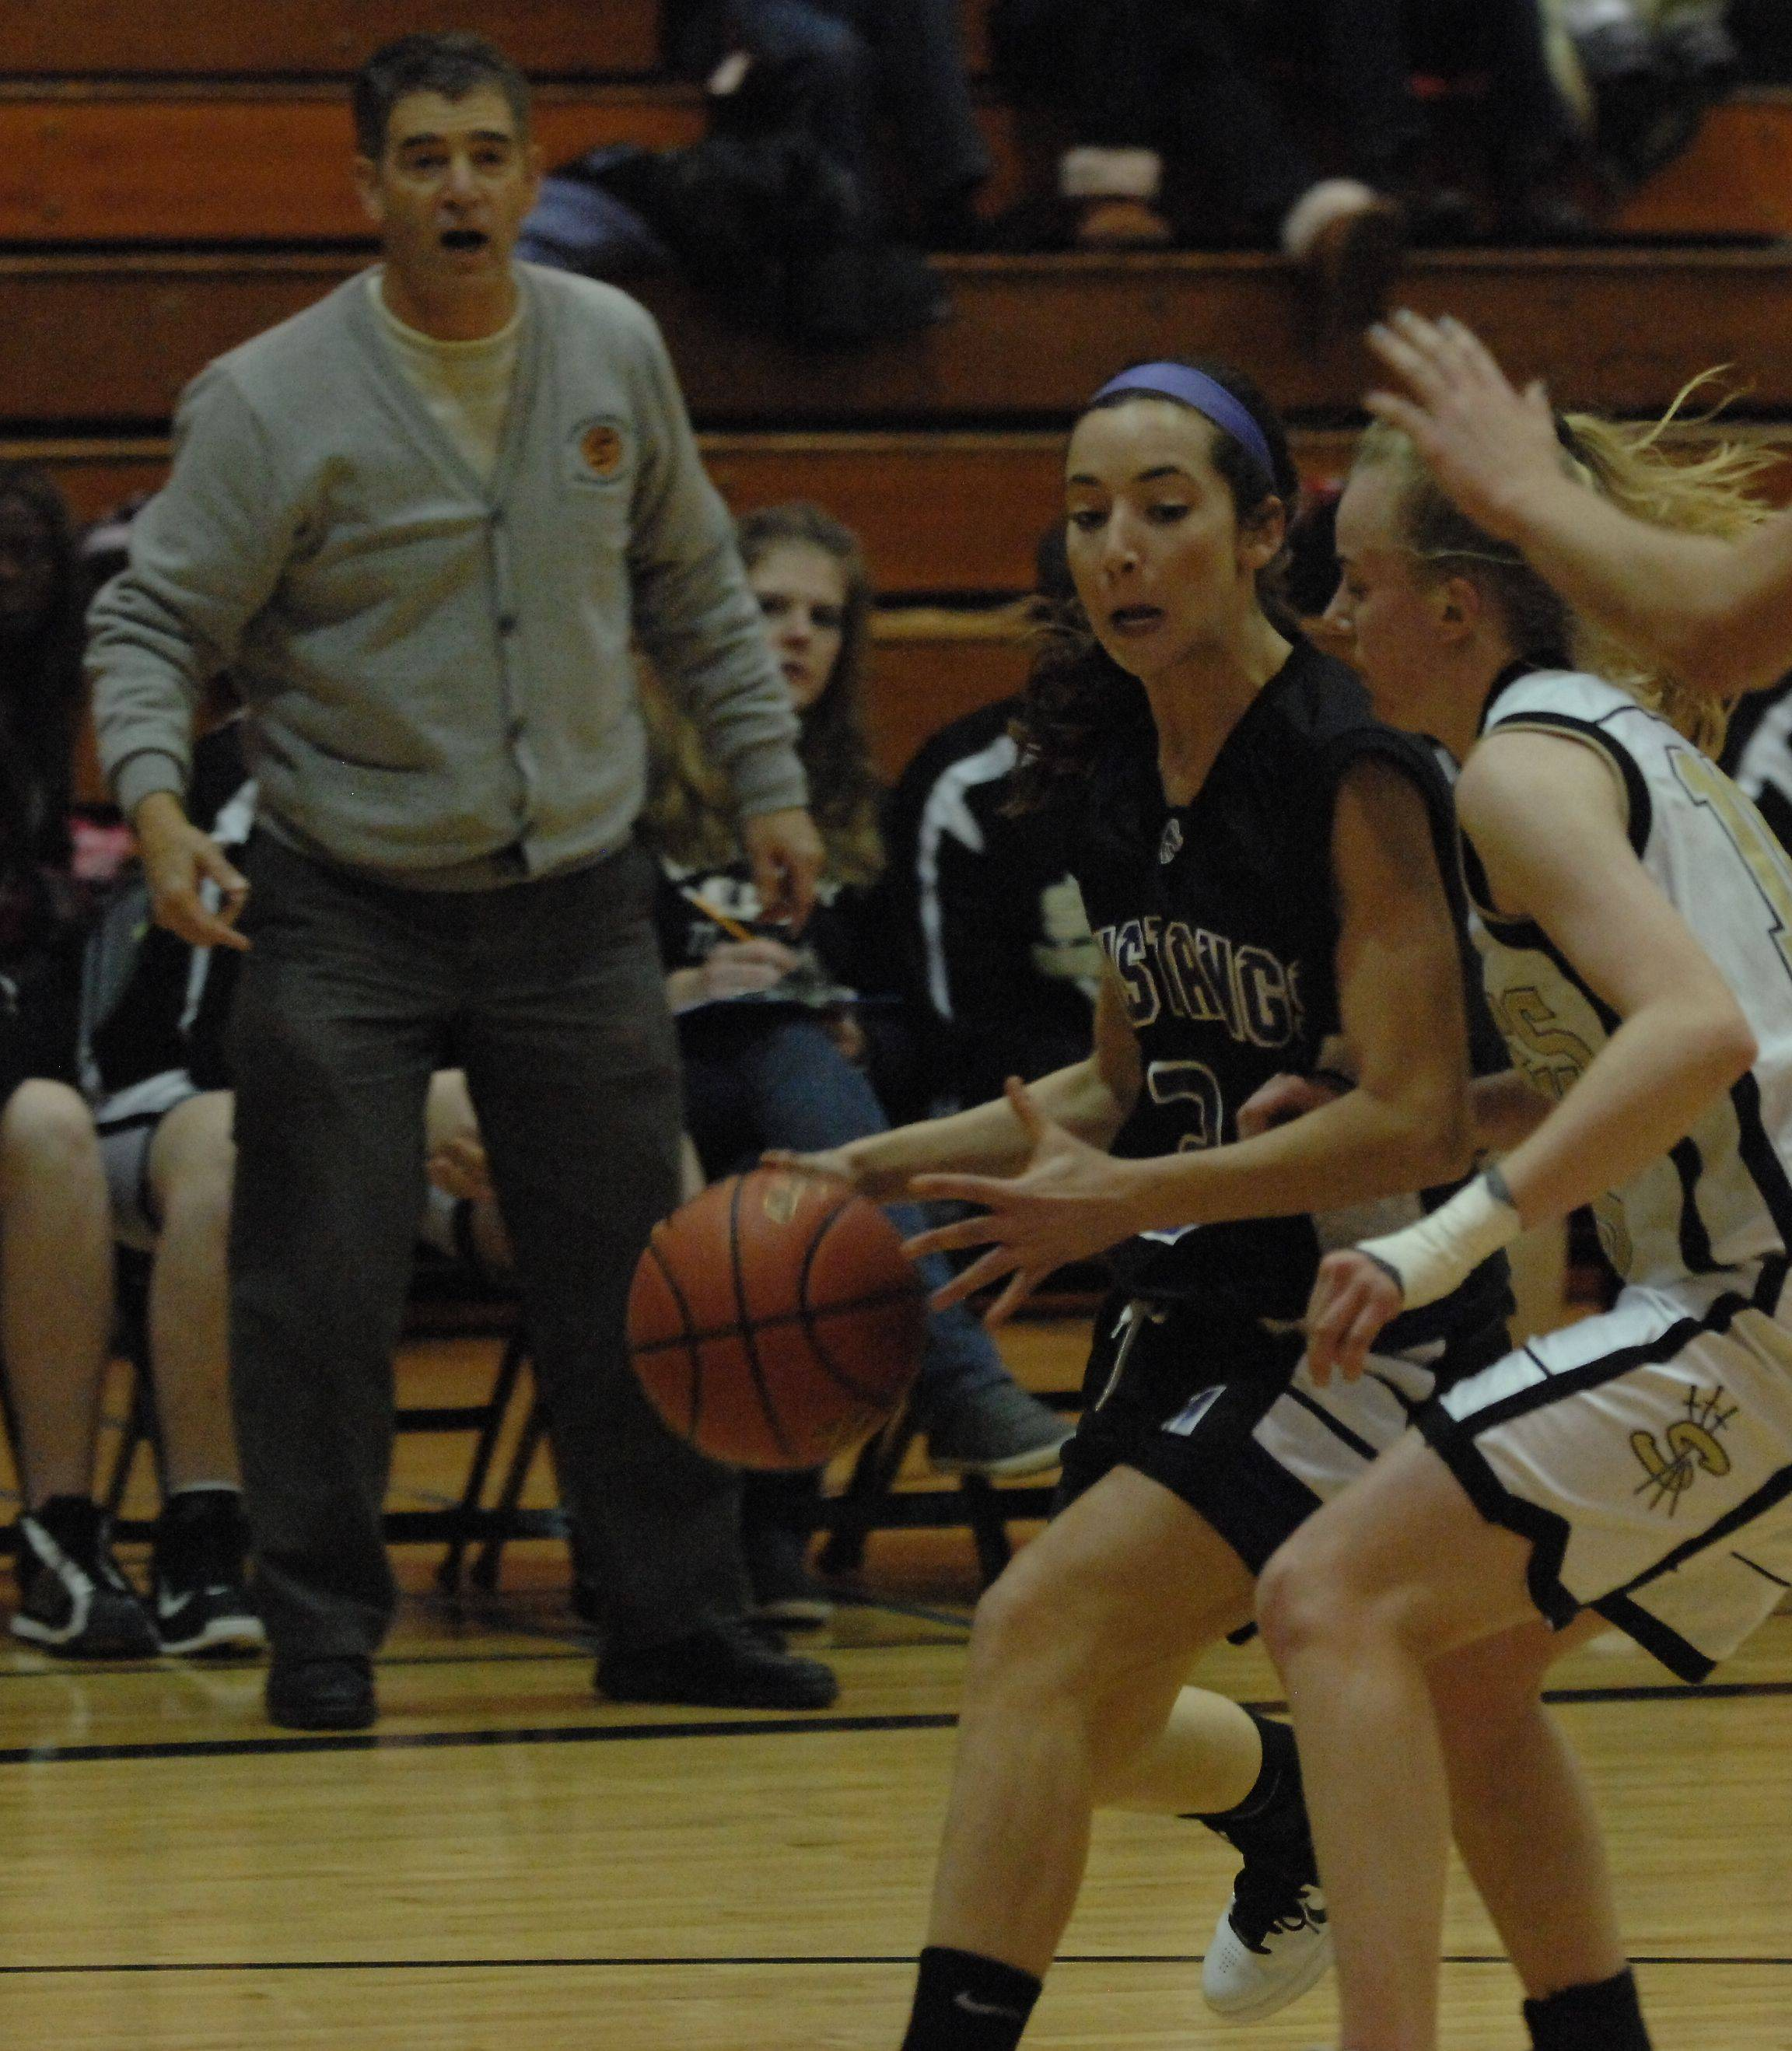 Images from the Streamwood vs. Rolling Meadows girls basketball game in Streamwood on Monday, December 13th